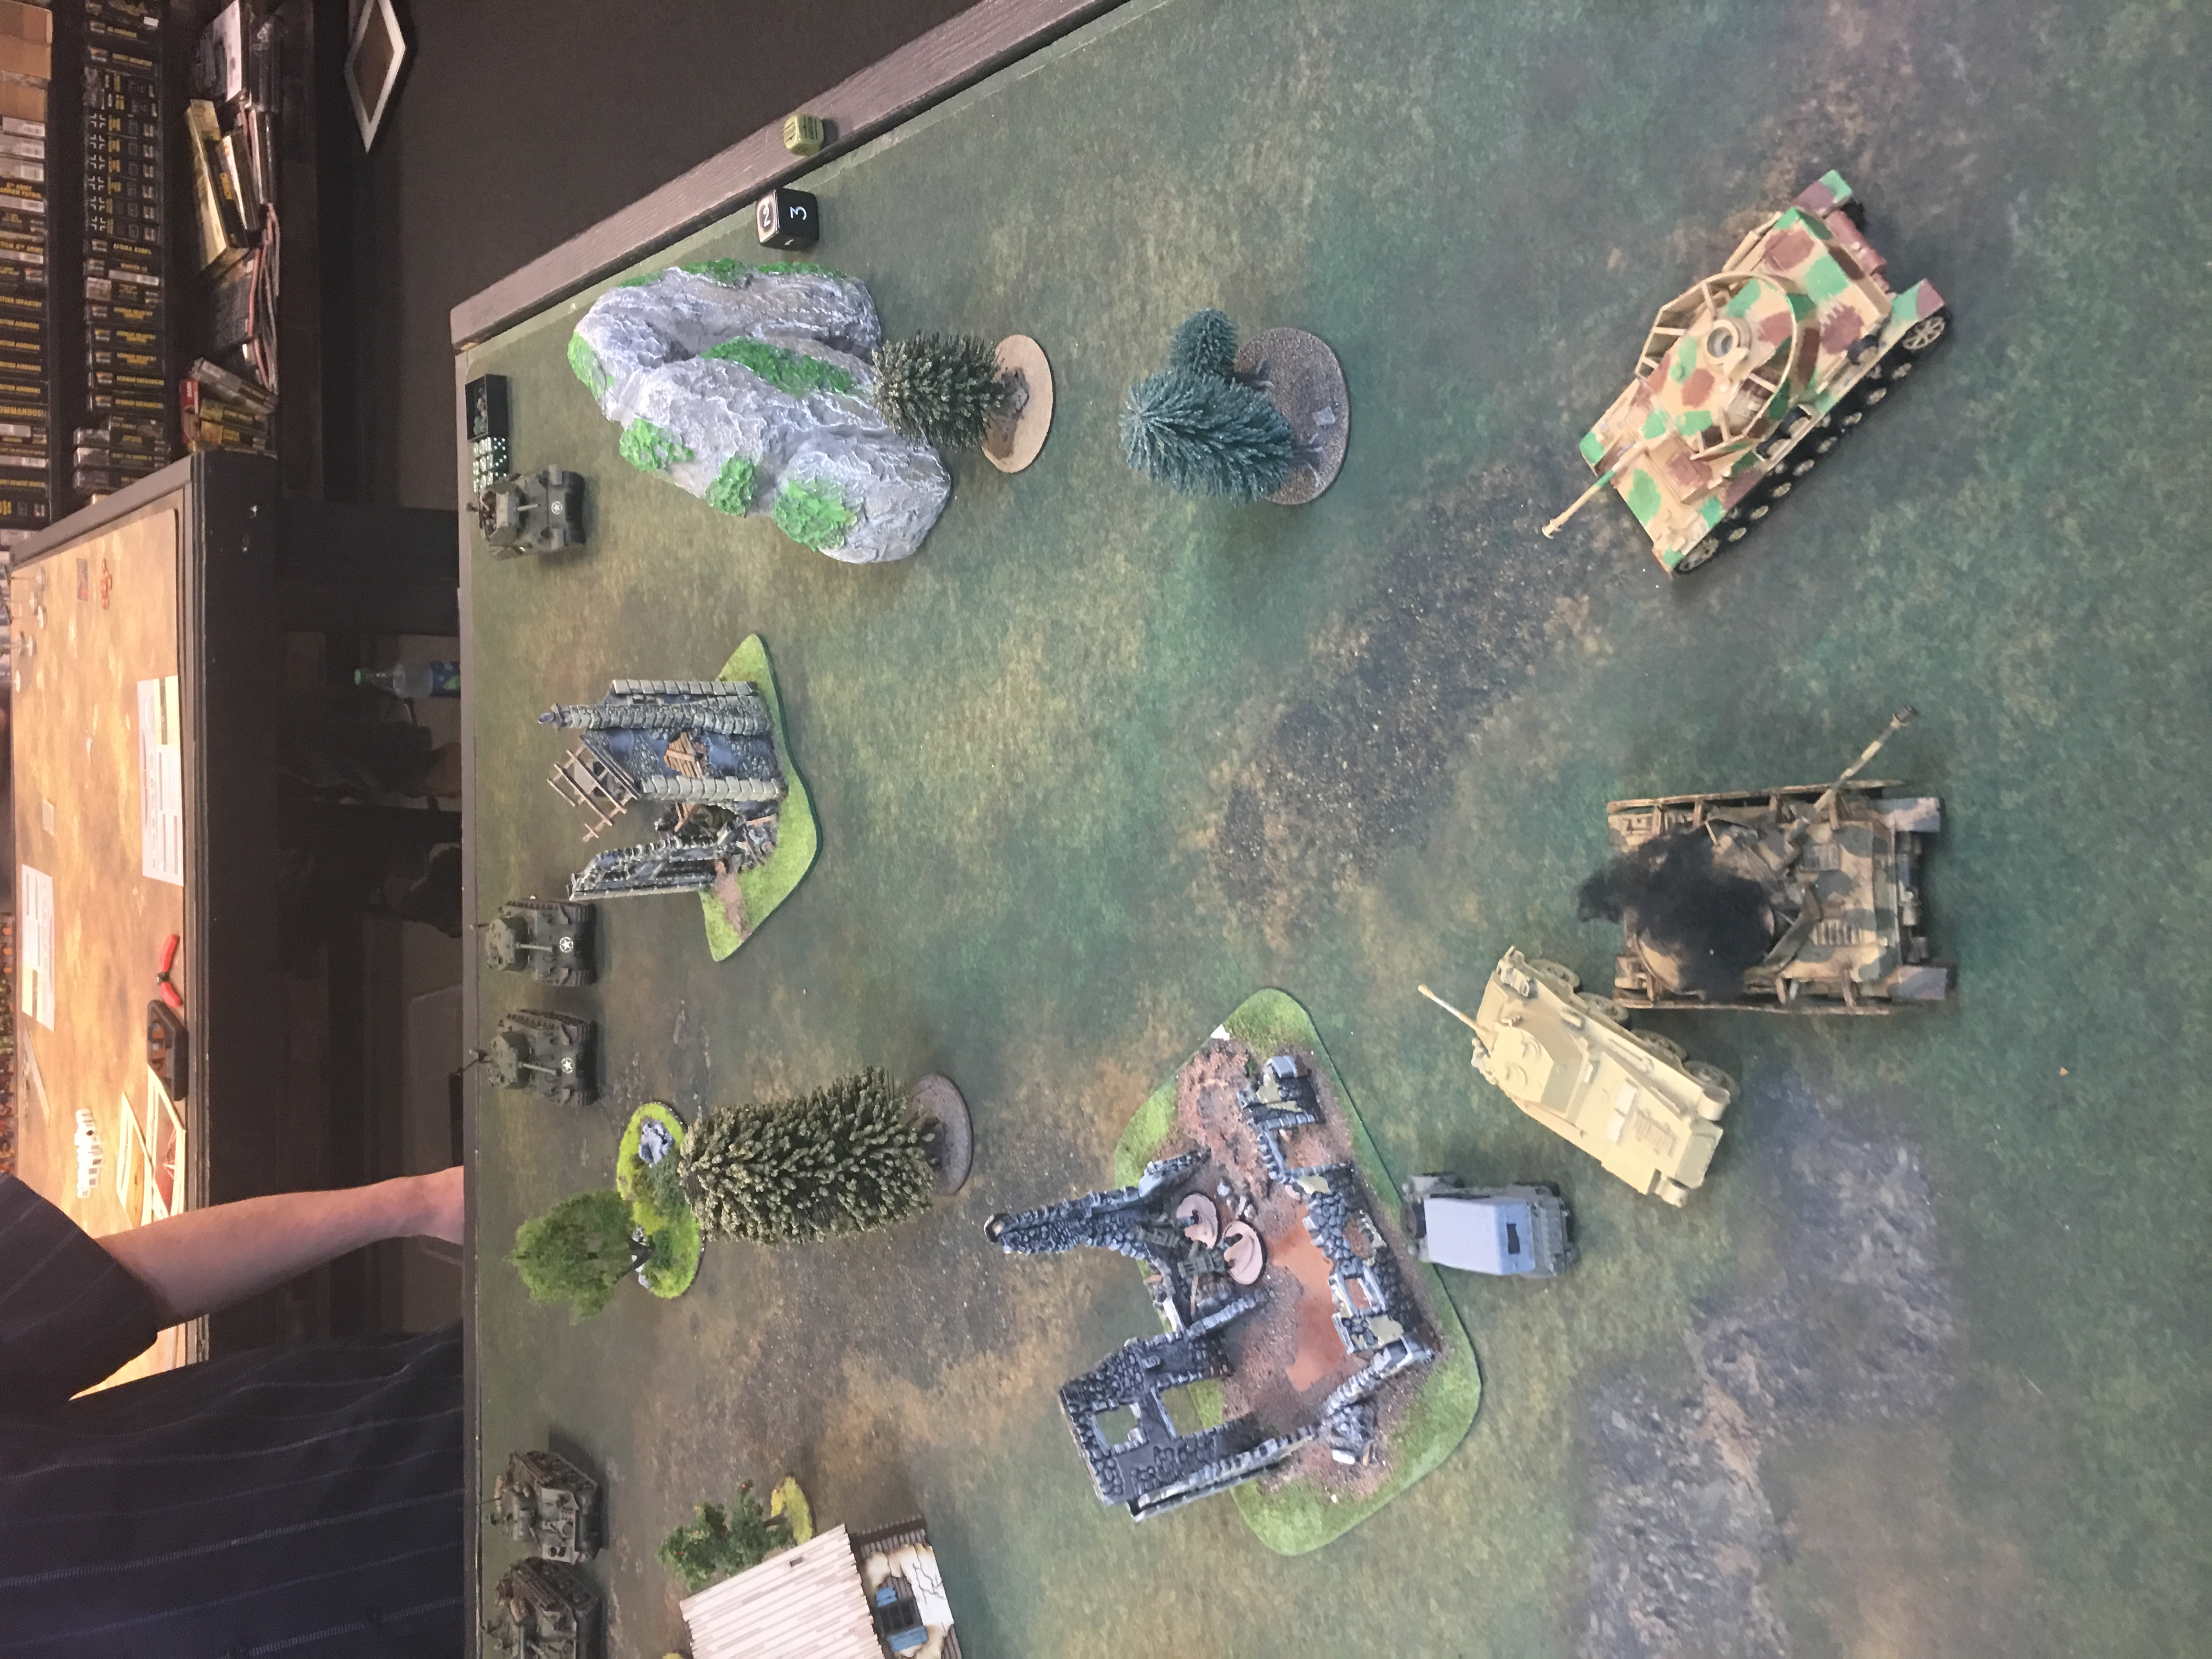 352nd Pionier Battalion versus The Furious in an armoured engagement